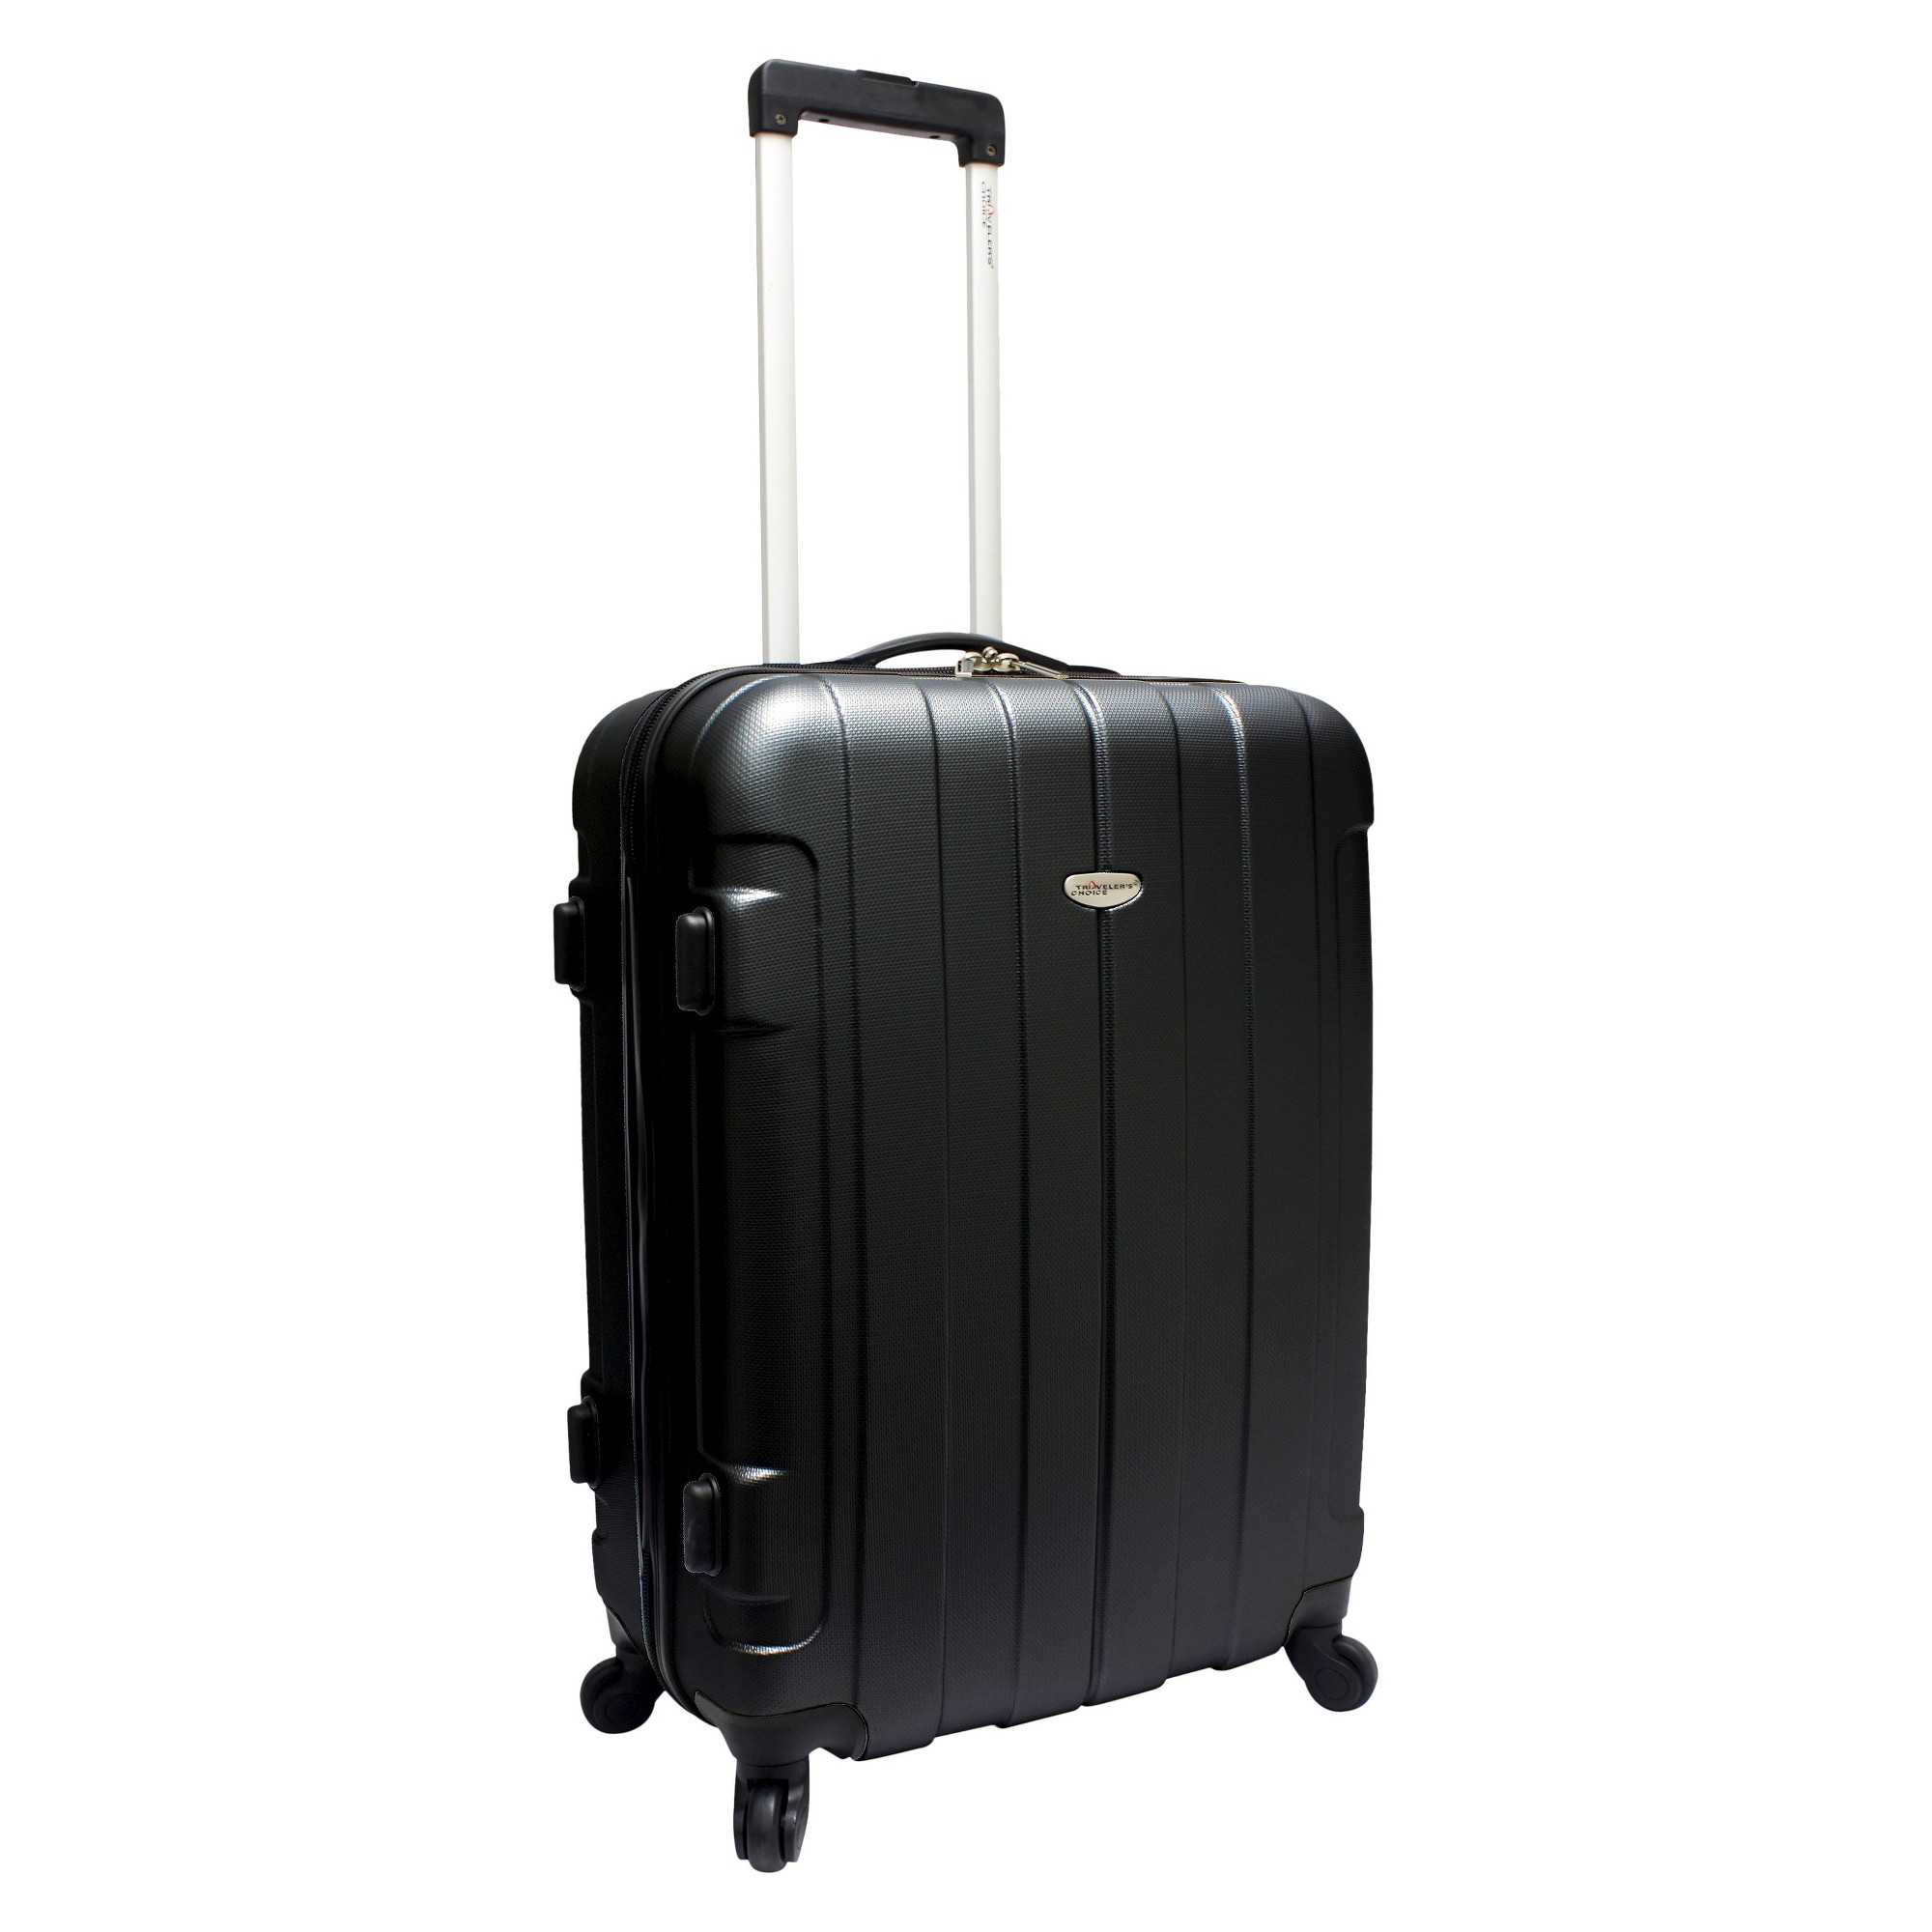 'Traveler's Choice Rome 25'' Suitcase - Black, Size: Small'